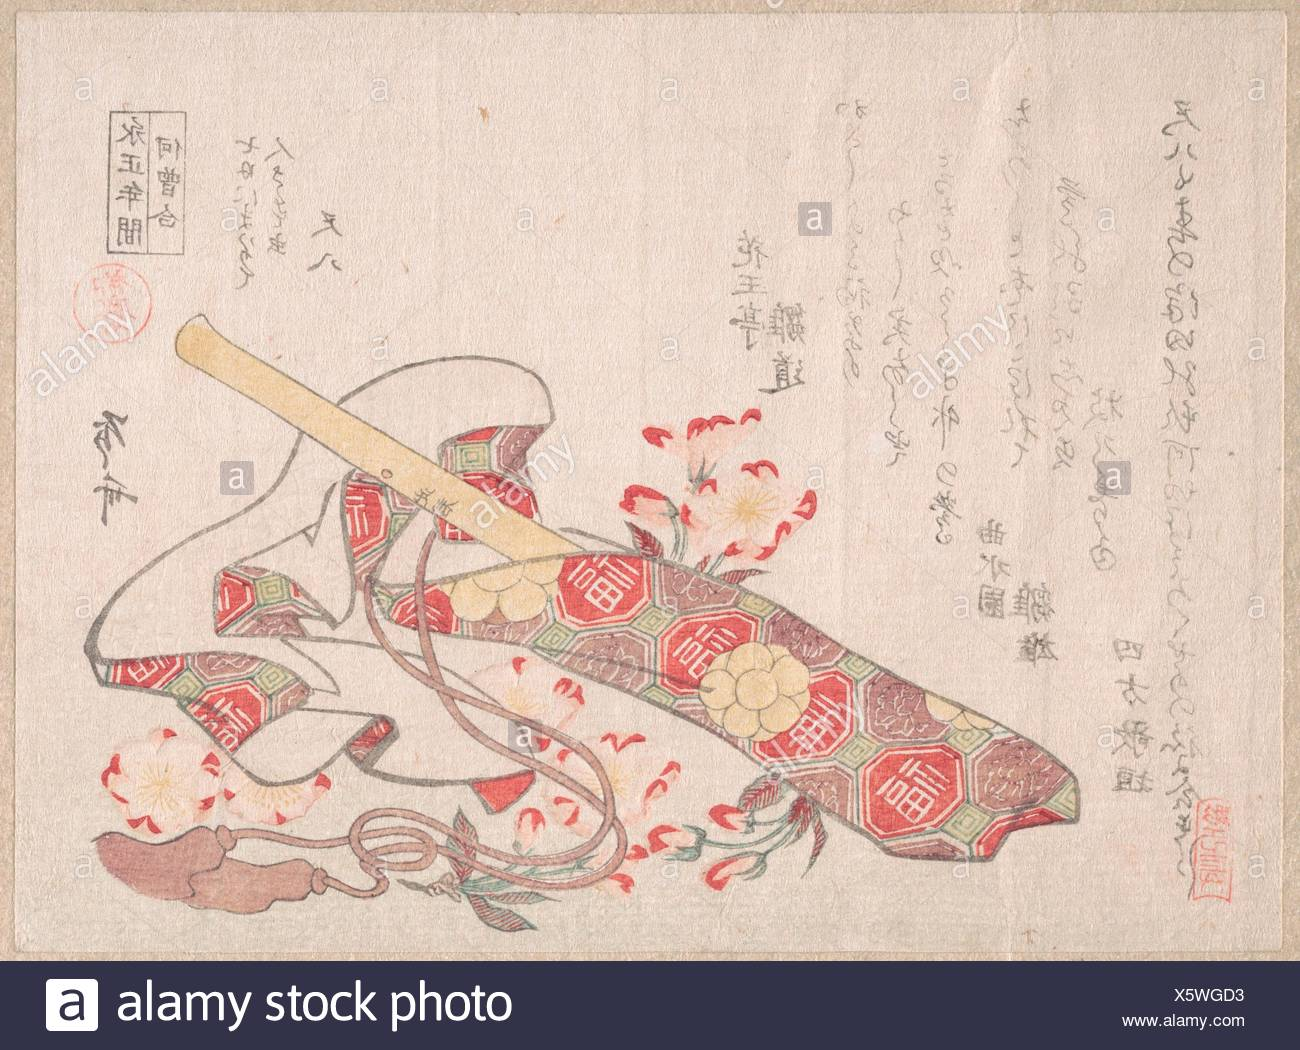 Shakuhachi, (a kind of bamboo flute), with Its Cover and Cherry Flowers. Artist: Ryuryukyo Shinsai (Japanese, active ca. 1799-1823); Period: Edo - Stock Image